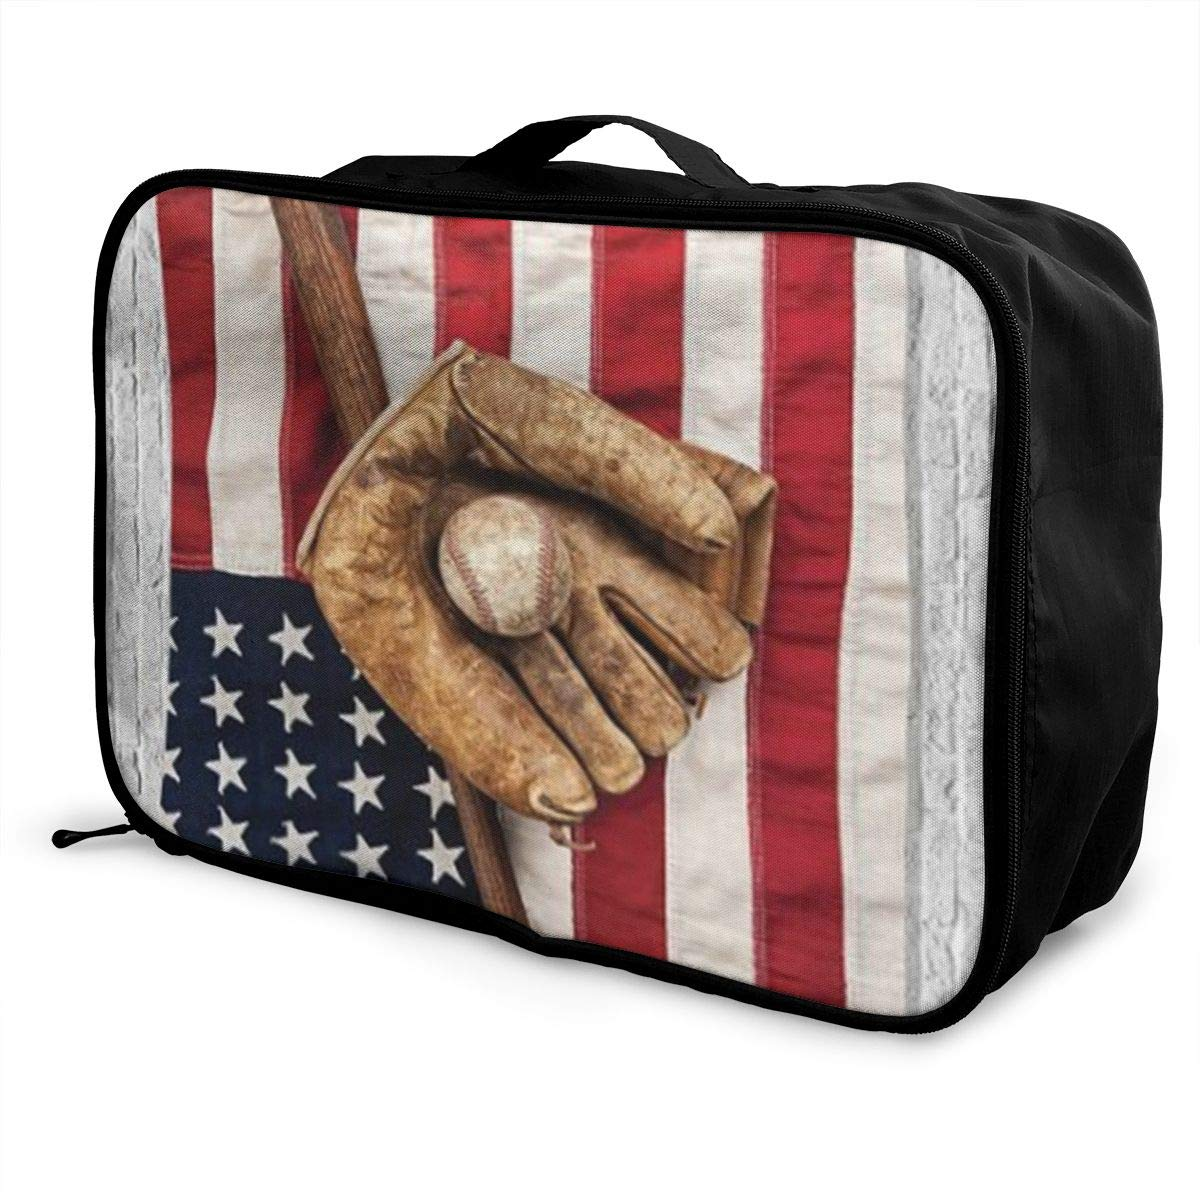 ADGAI Baseball with USA American Flag Canvas Travel Weekender Bag,Fashion Custom Lightweight Large Capacity Portable Luggage Bag,Suitcase Trolley Bag